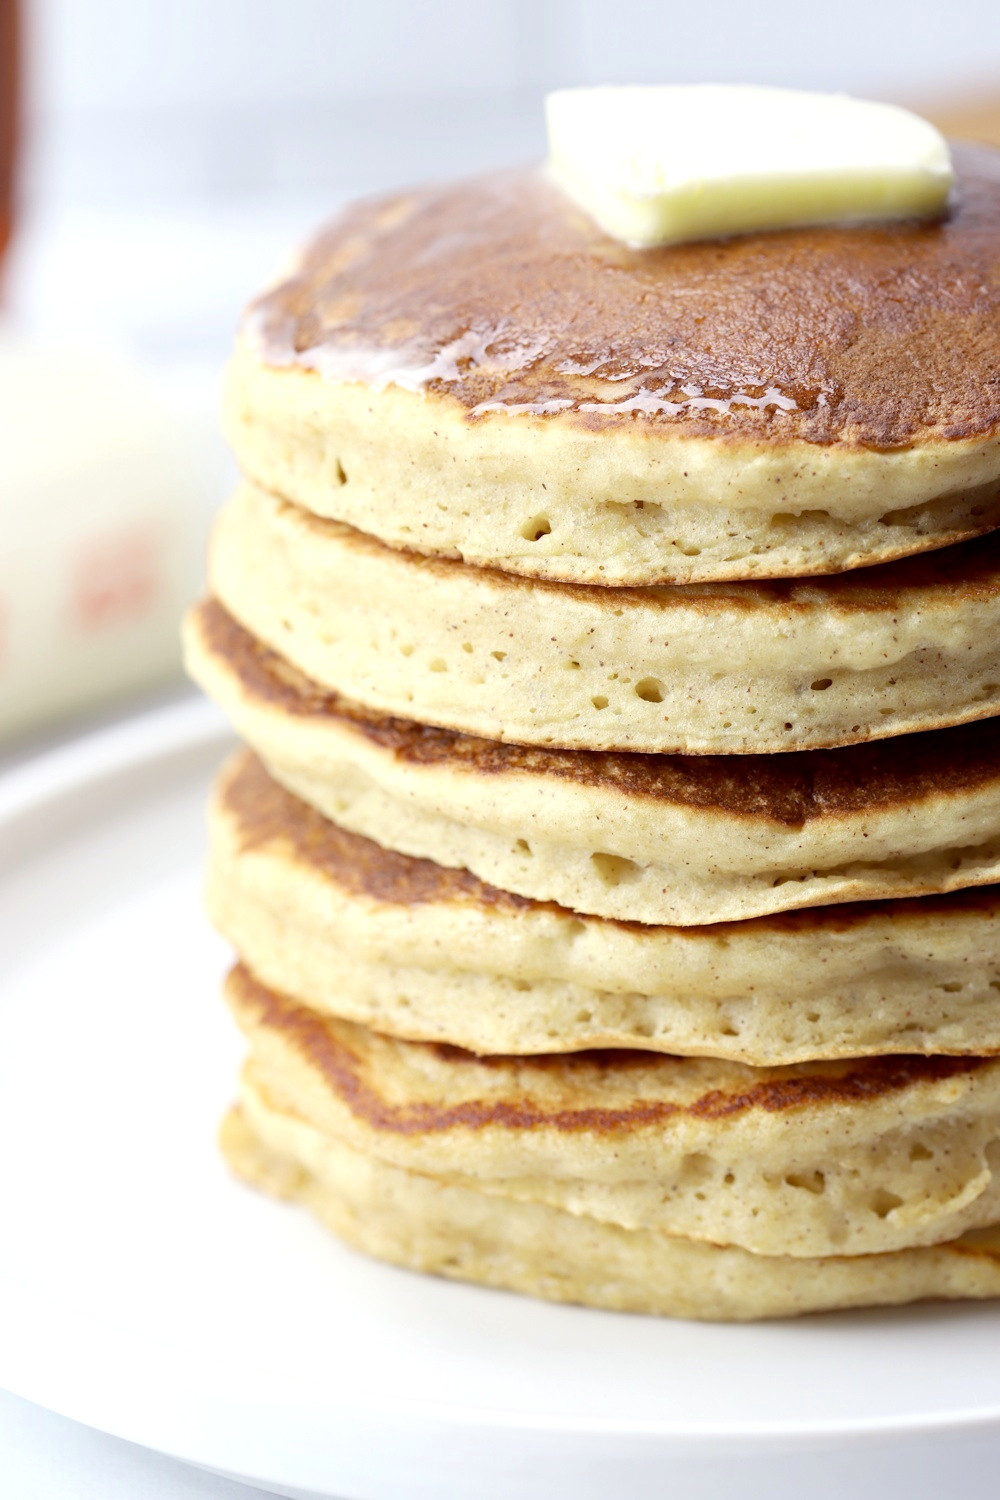 Close up of the sides of cooked pancakes.